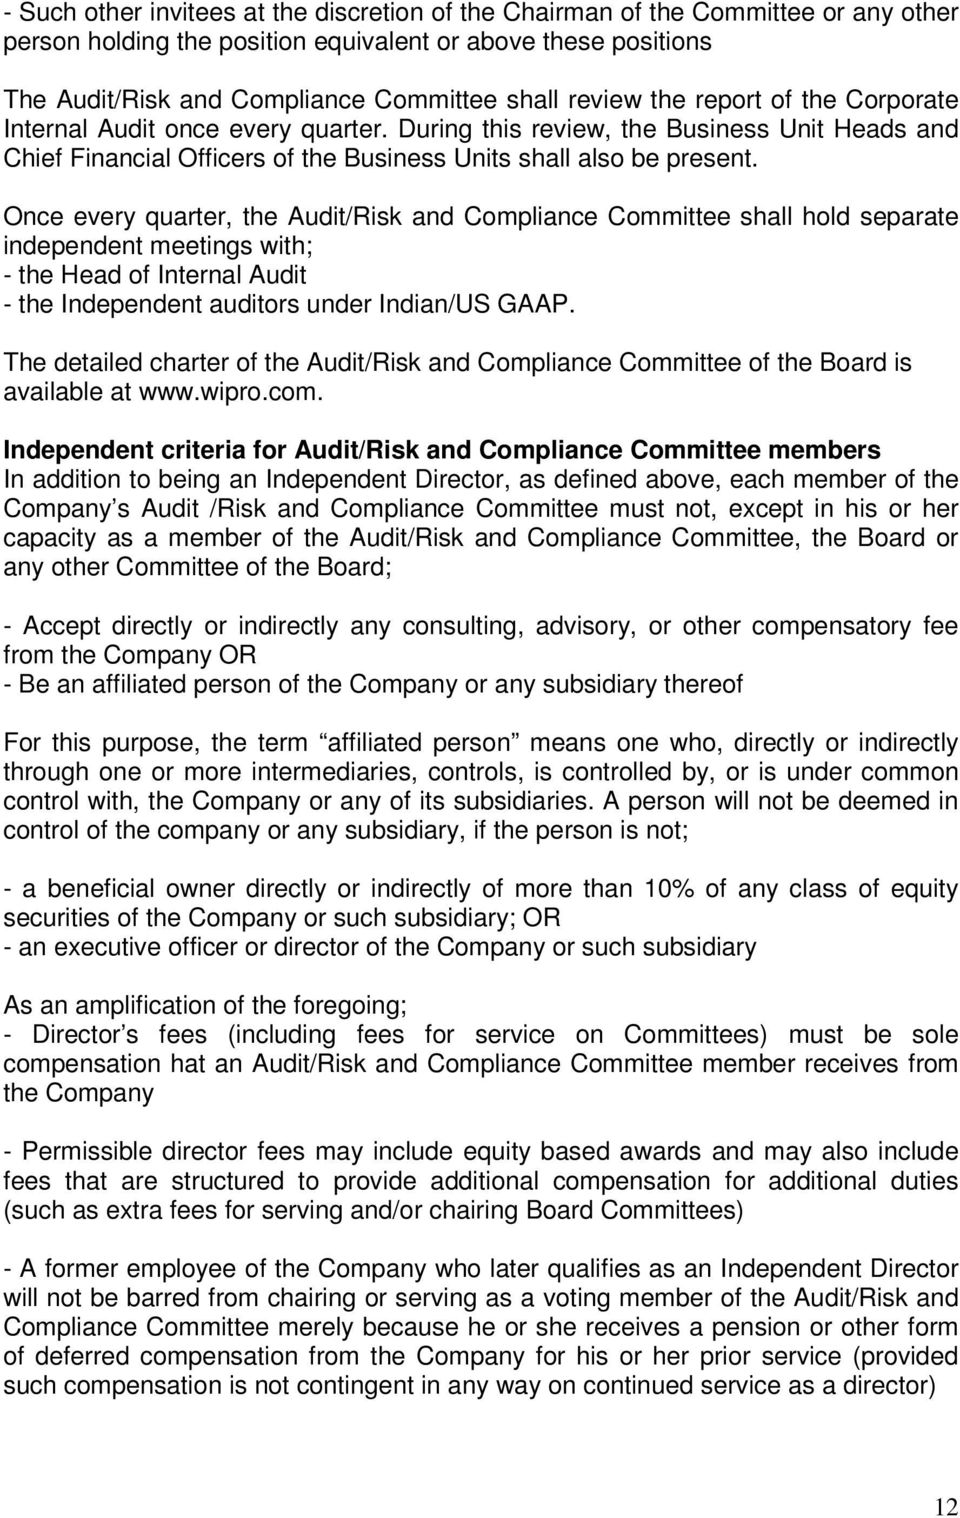 Once every quarter, the Audit/Risk and Compliance Committee shall hold separate independent meetings with; - the Head of Internal Audit - the Independent auditors under Indian/US GAAP.